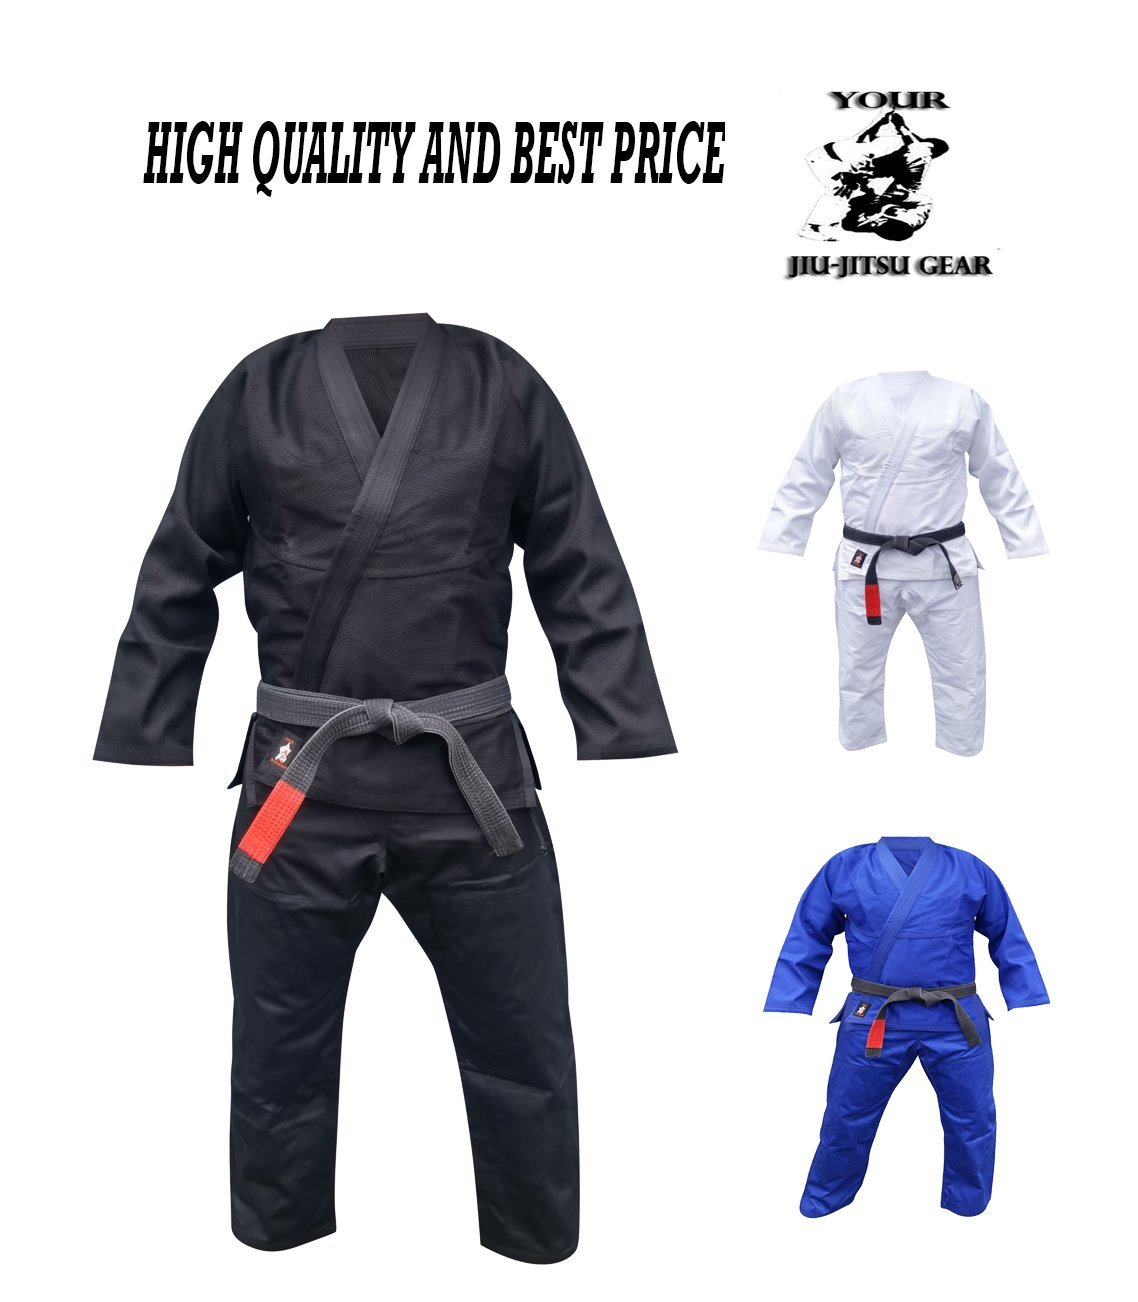 Your Jiu Jitsu Gear Brazilian Jiu Jitsu Uniform Light Weight Black A5 Free Belt by Your Jiu Jitsu Gear